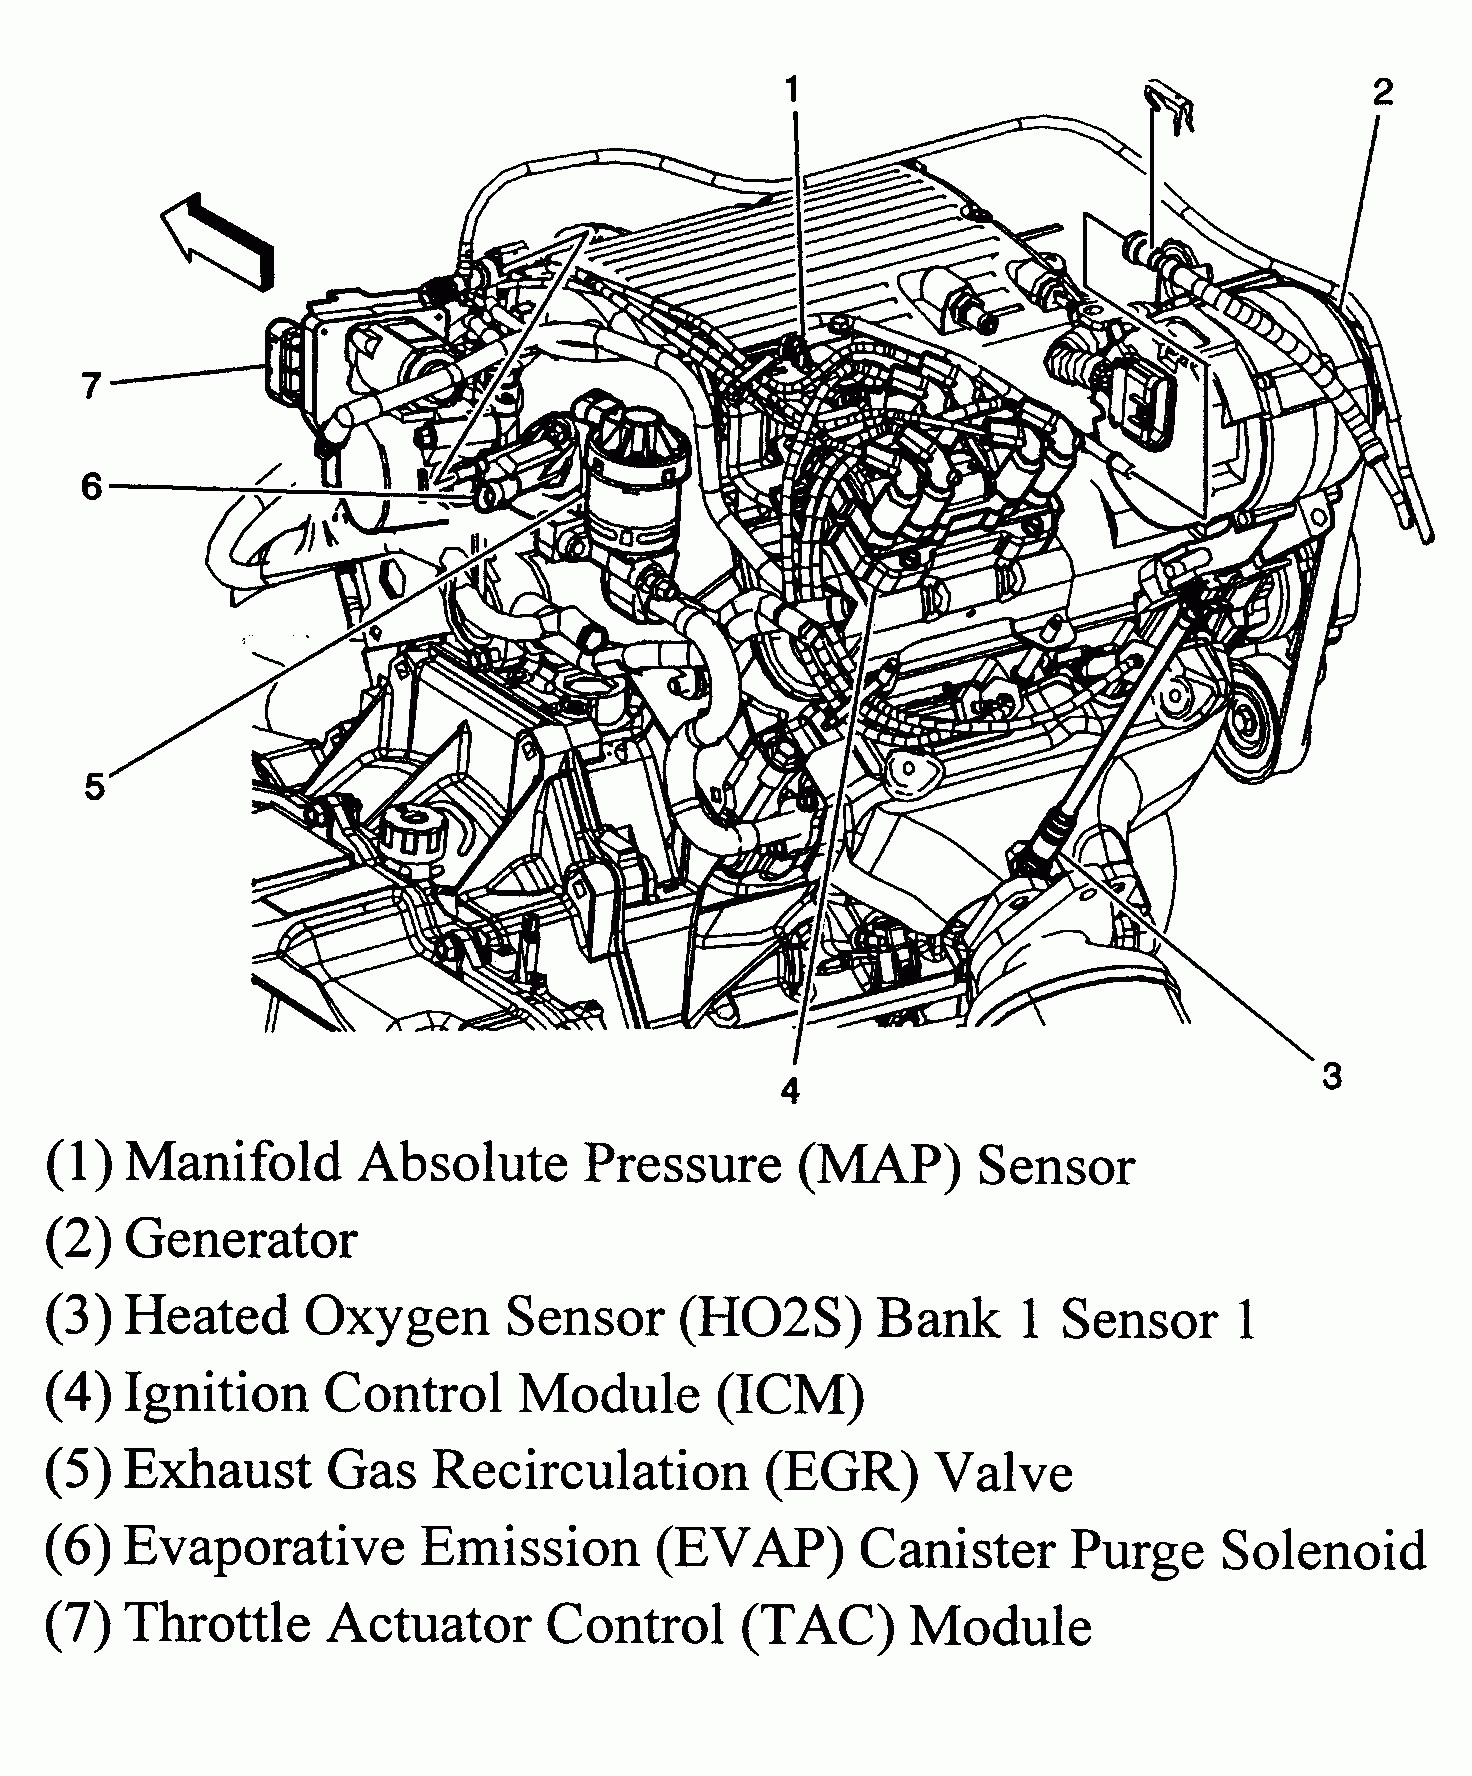 hight resolution of 2006 grand prix engine diagram schema diagram database2006 grand prix engine diagram wiring diagram blog 2006